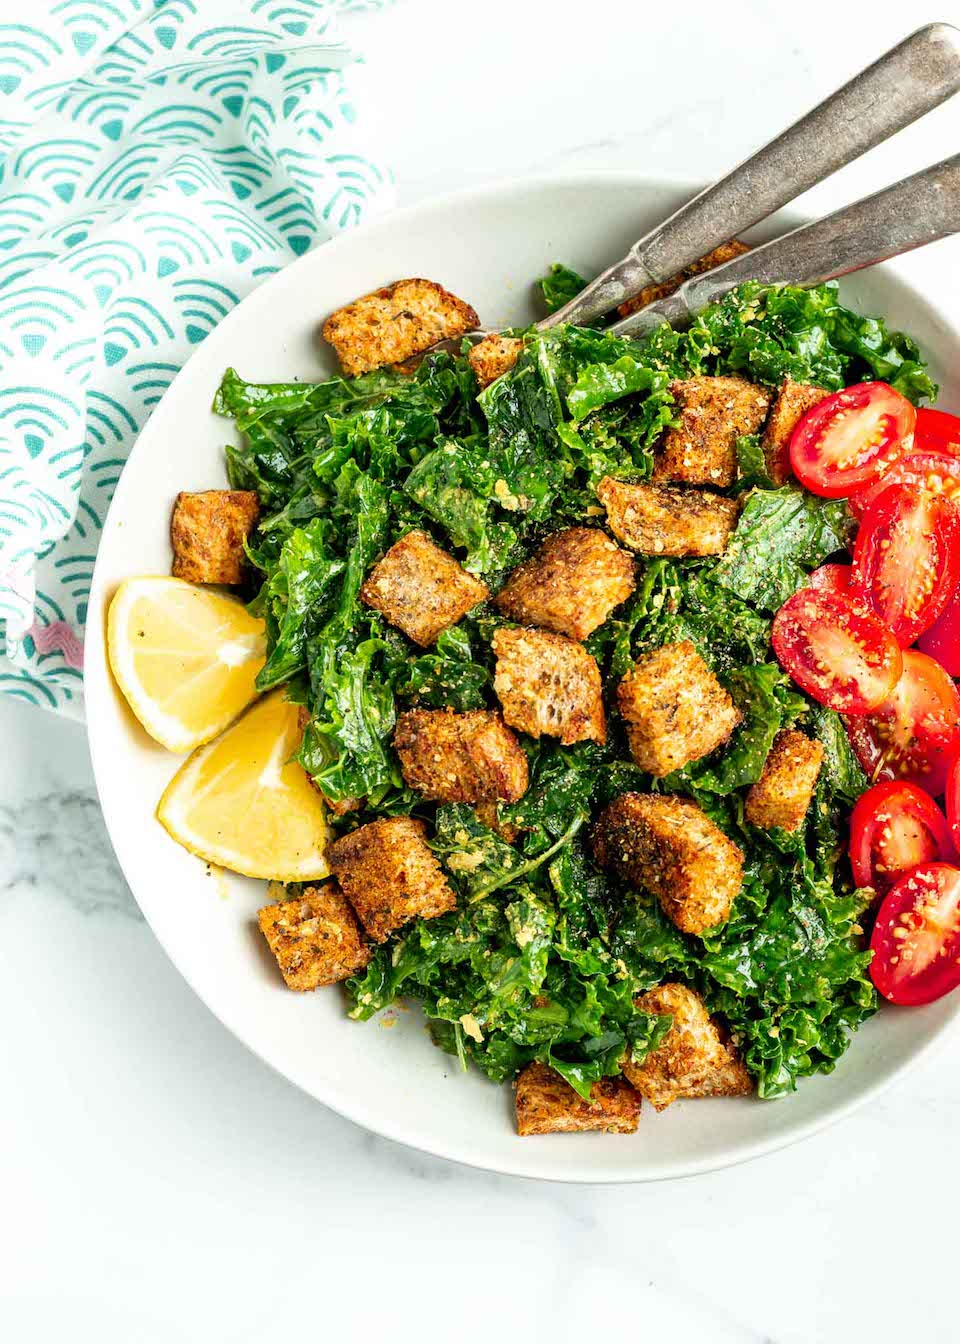 This Easy Kale Caesar Salad is a lighter and vegetarian-friendly take on a classic! The perfect side dish beside any lunch or dinner, this healthy, clean eating (and gluten free!) chopped kale salad recipe is easy to make and tastes delicious! And the best part? A super simple caesar dressing made with lemon, olive oil and garlic and those homemade croutons!